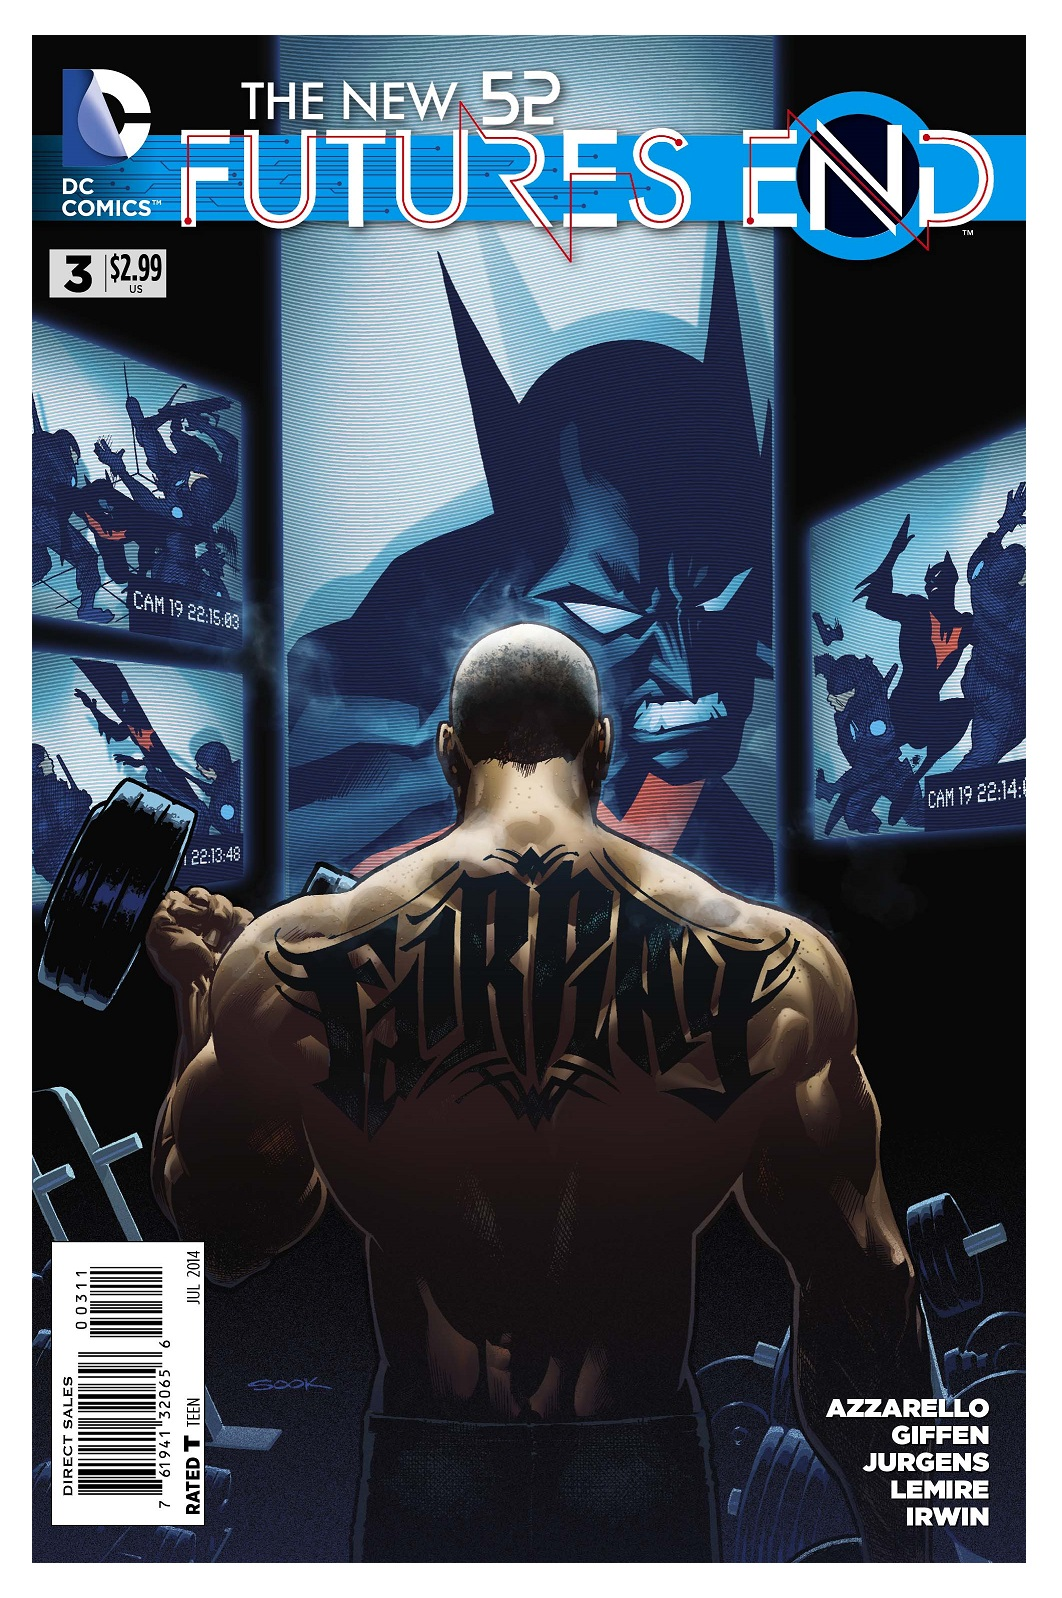 The New 52: Futures End Vol.1 #3